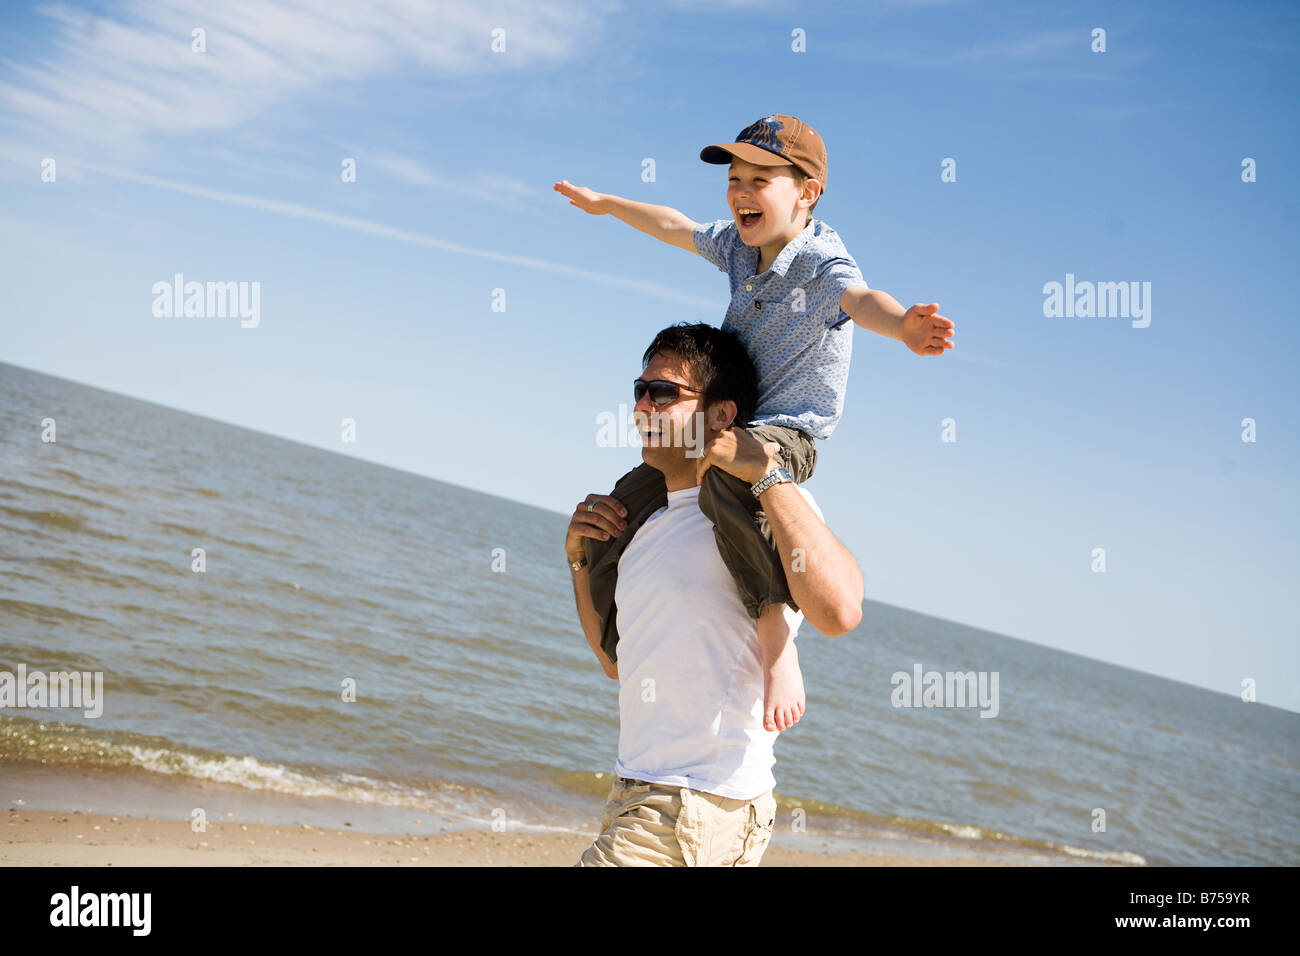 Man carries boy (7) on his shoulders, Grand Beach Provincial Park, Manitoba, Canada - Stock Image